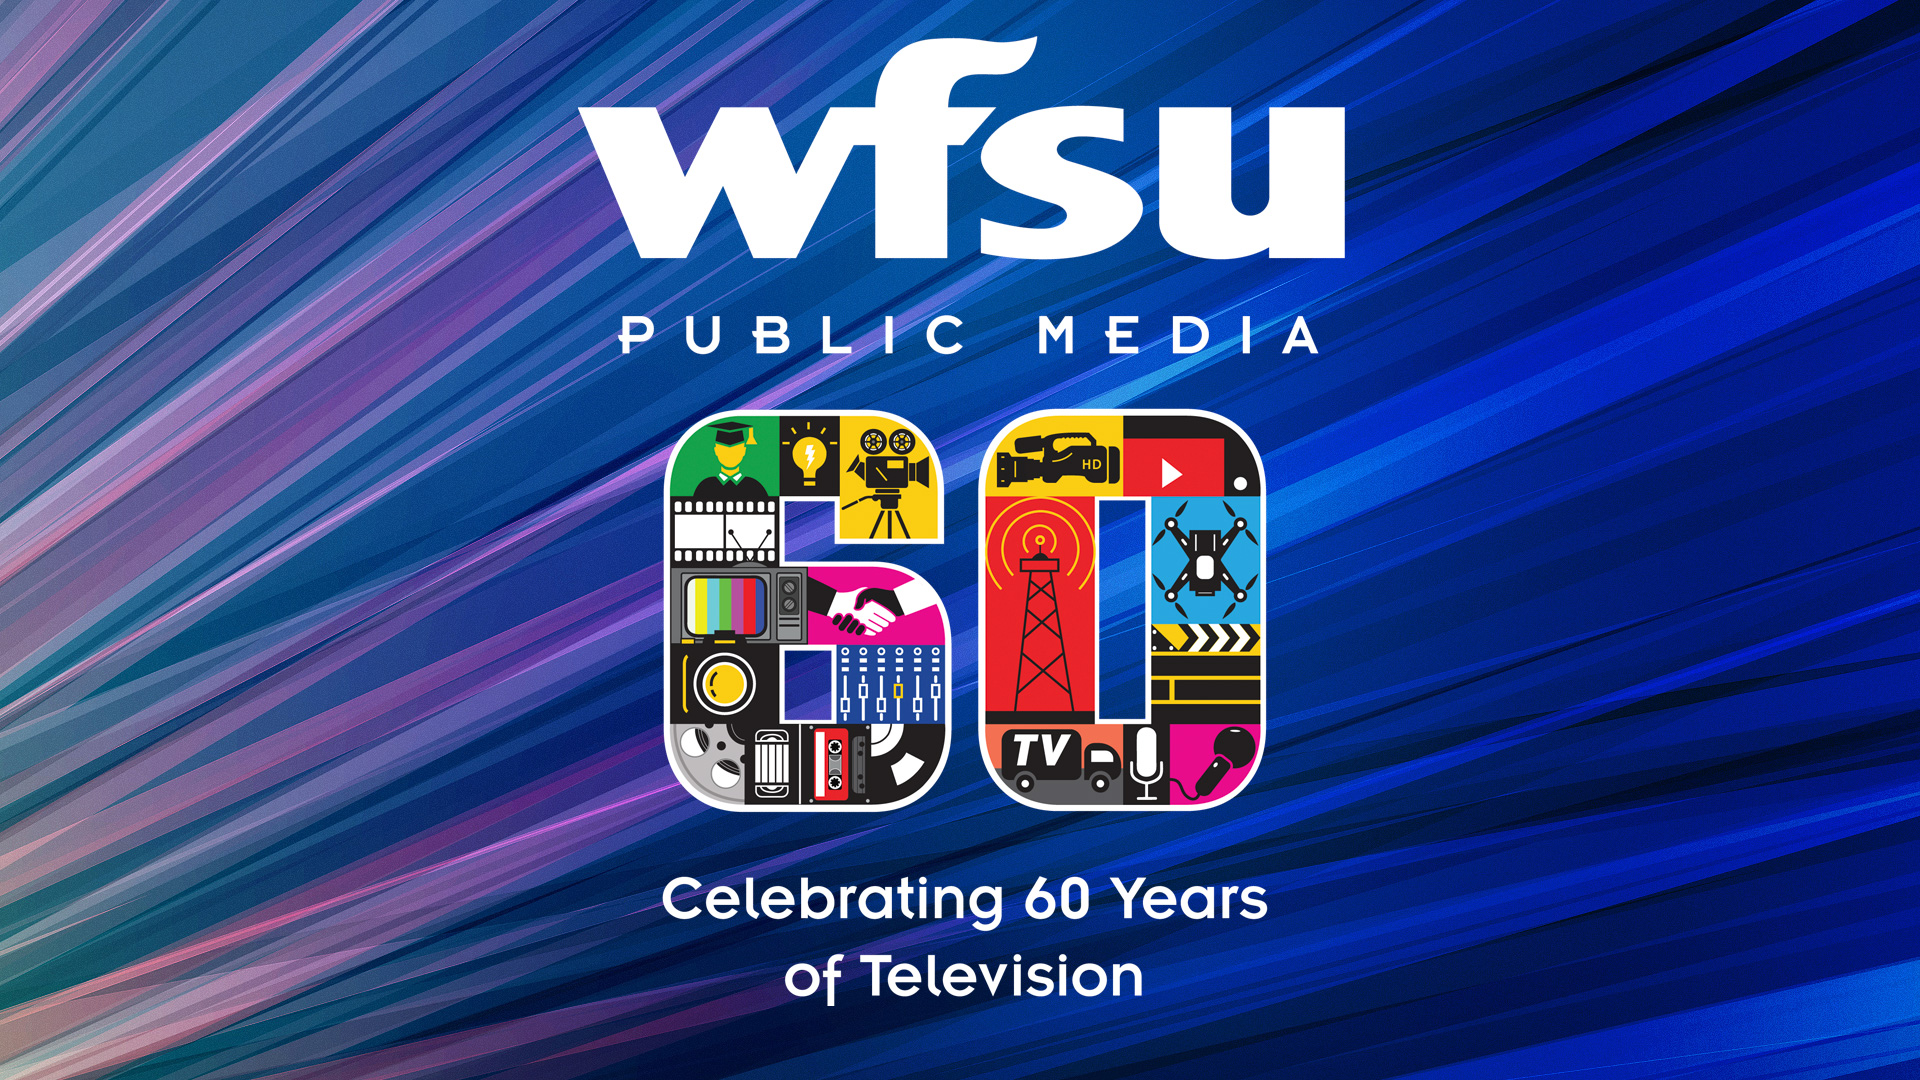 WFSU 60th logo over colorful background.